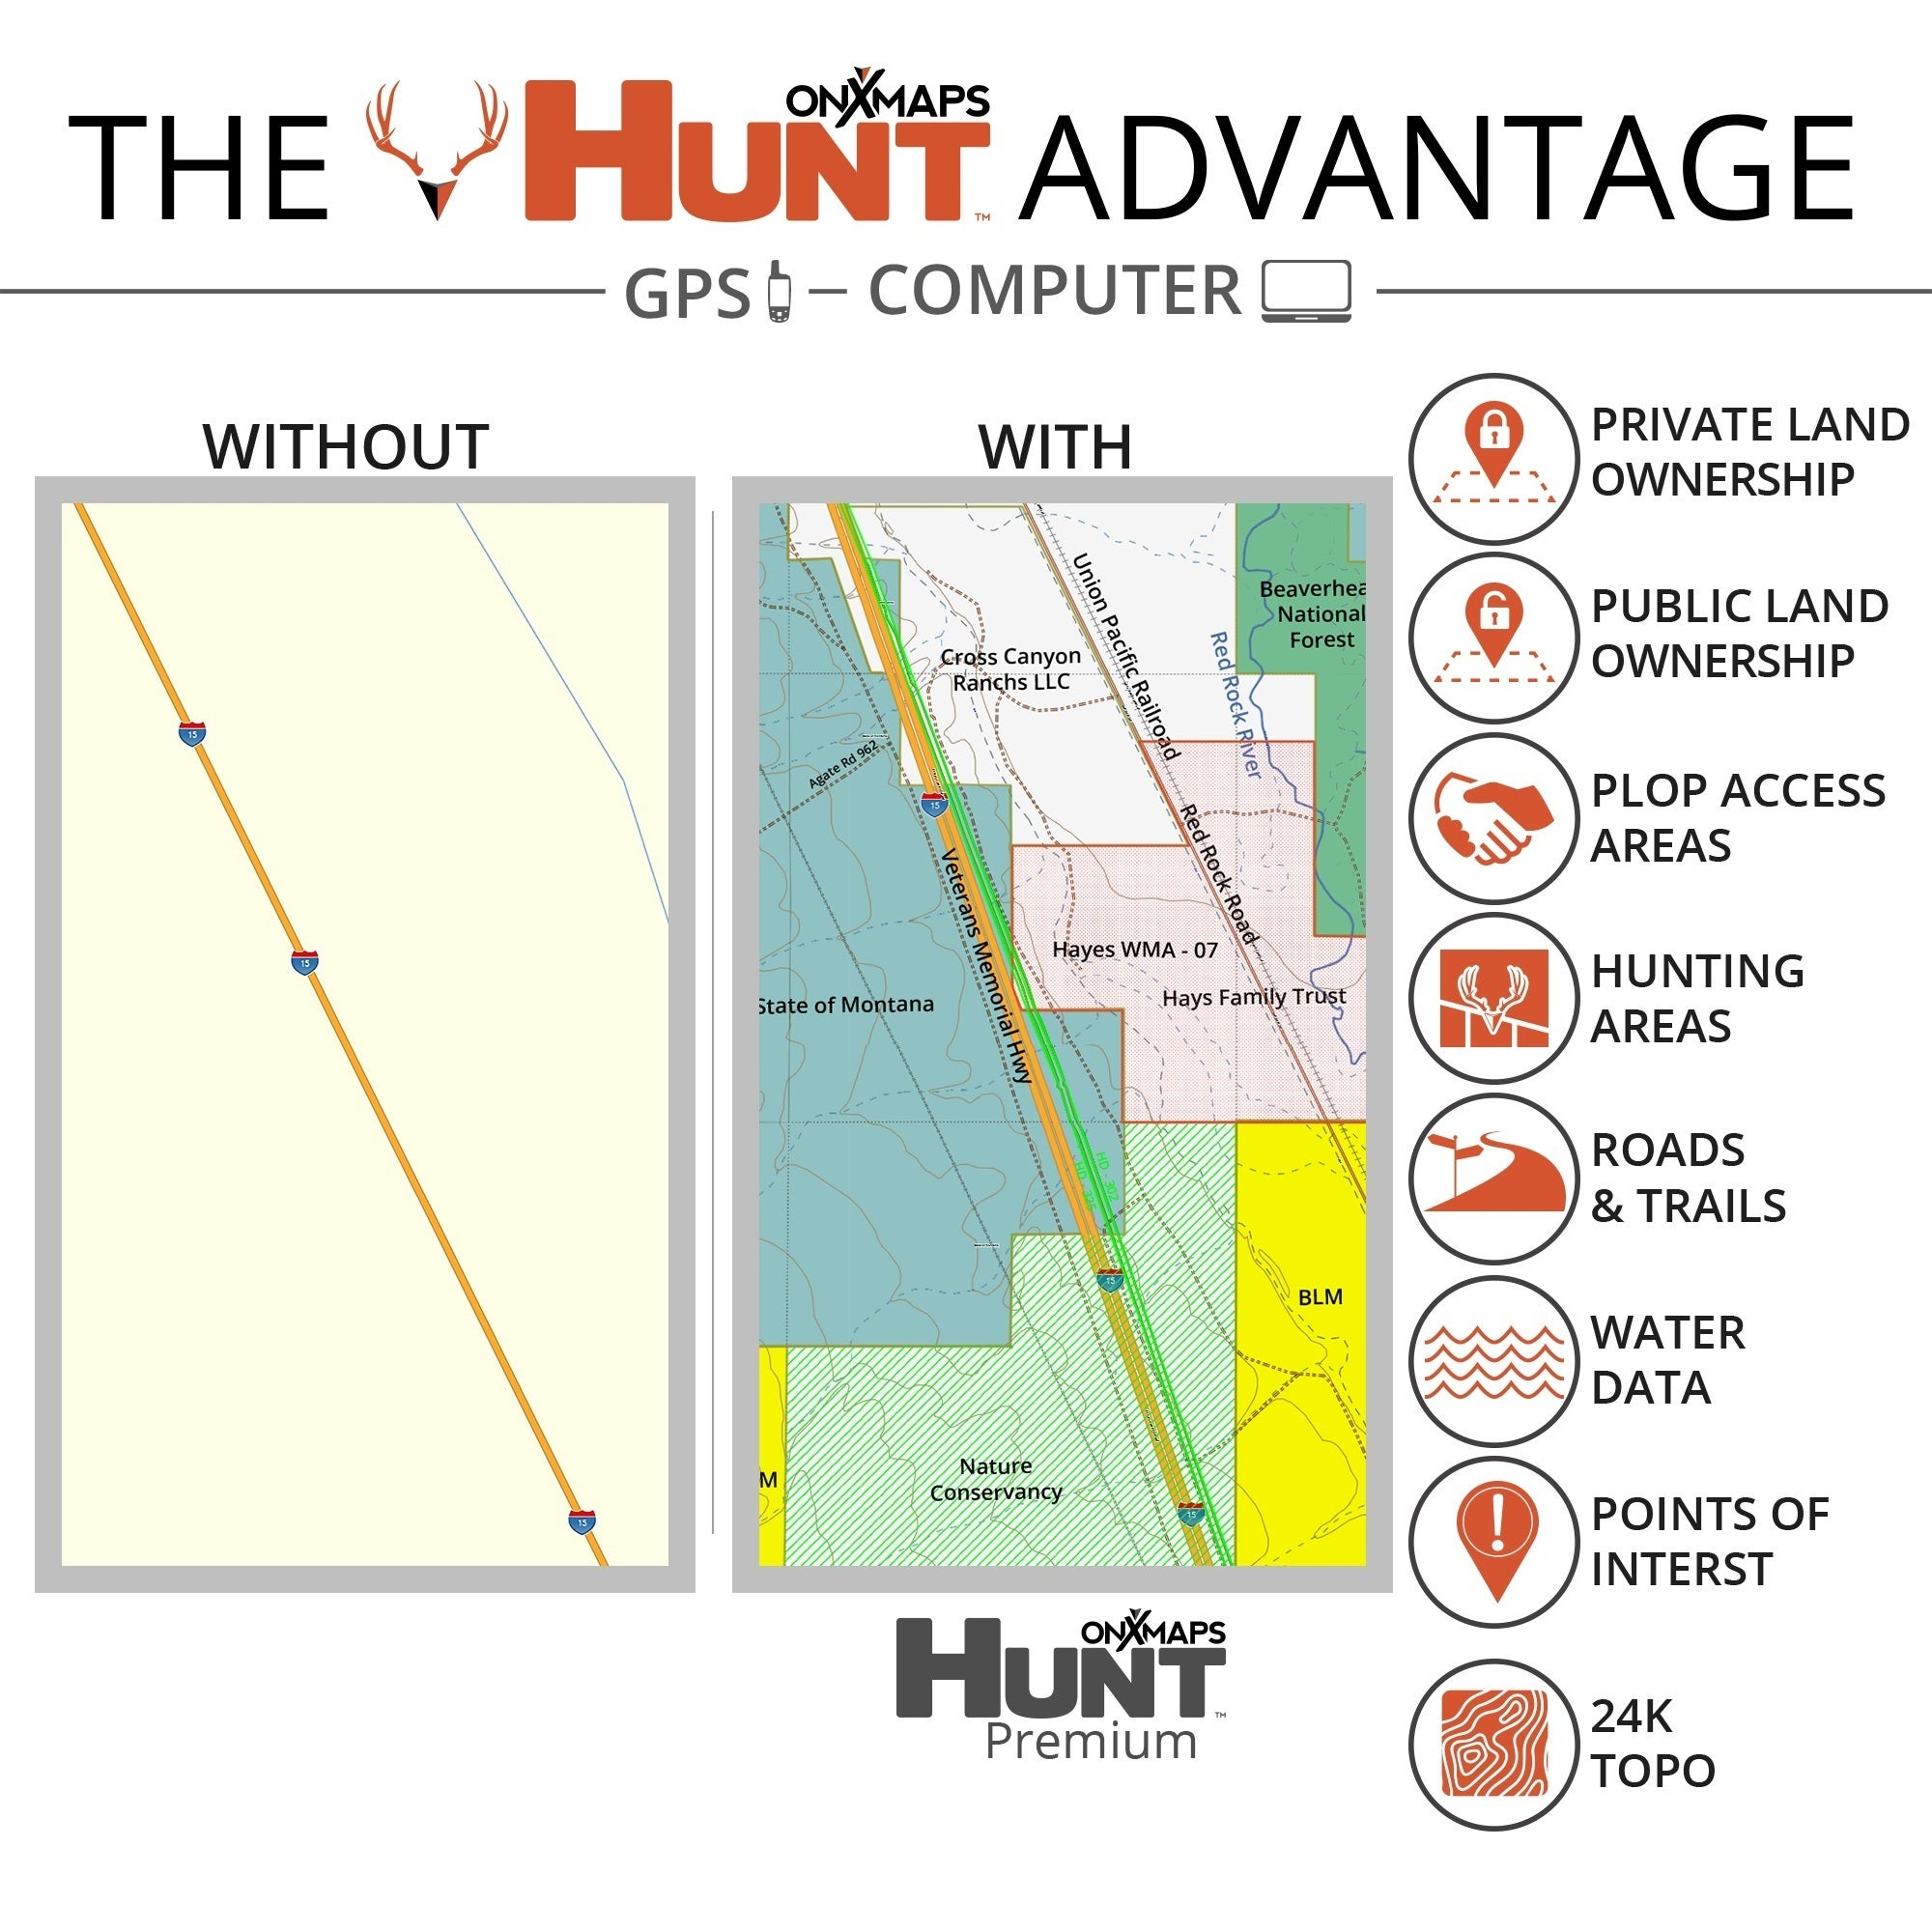 onX Hunt Arkansas: Public/ Private Land Ownership 24k Topo Maps for Garmin  GPS Units for Smartphone and Computer